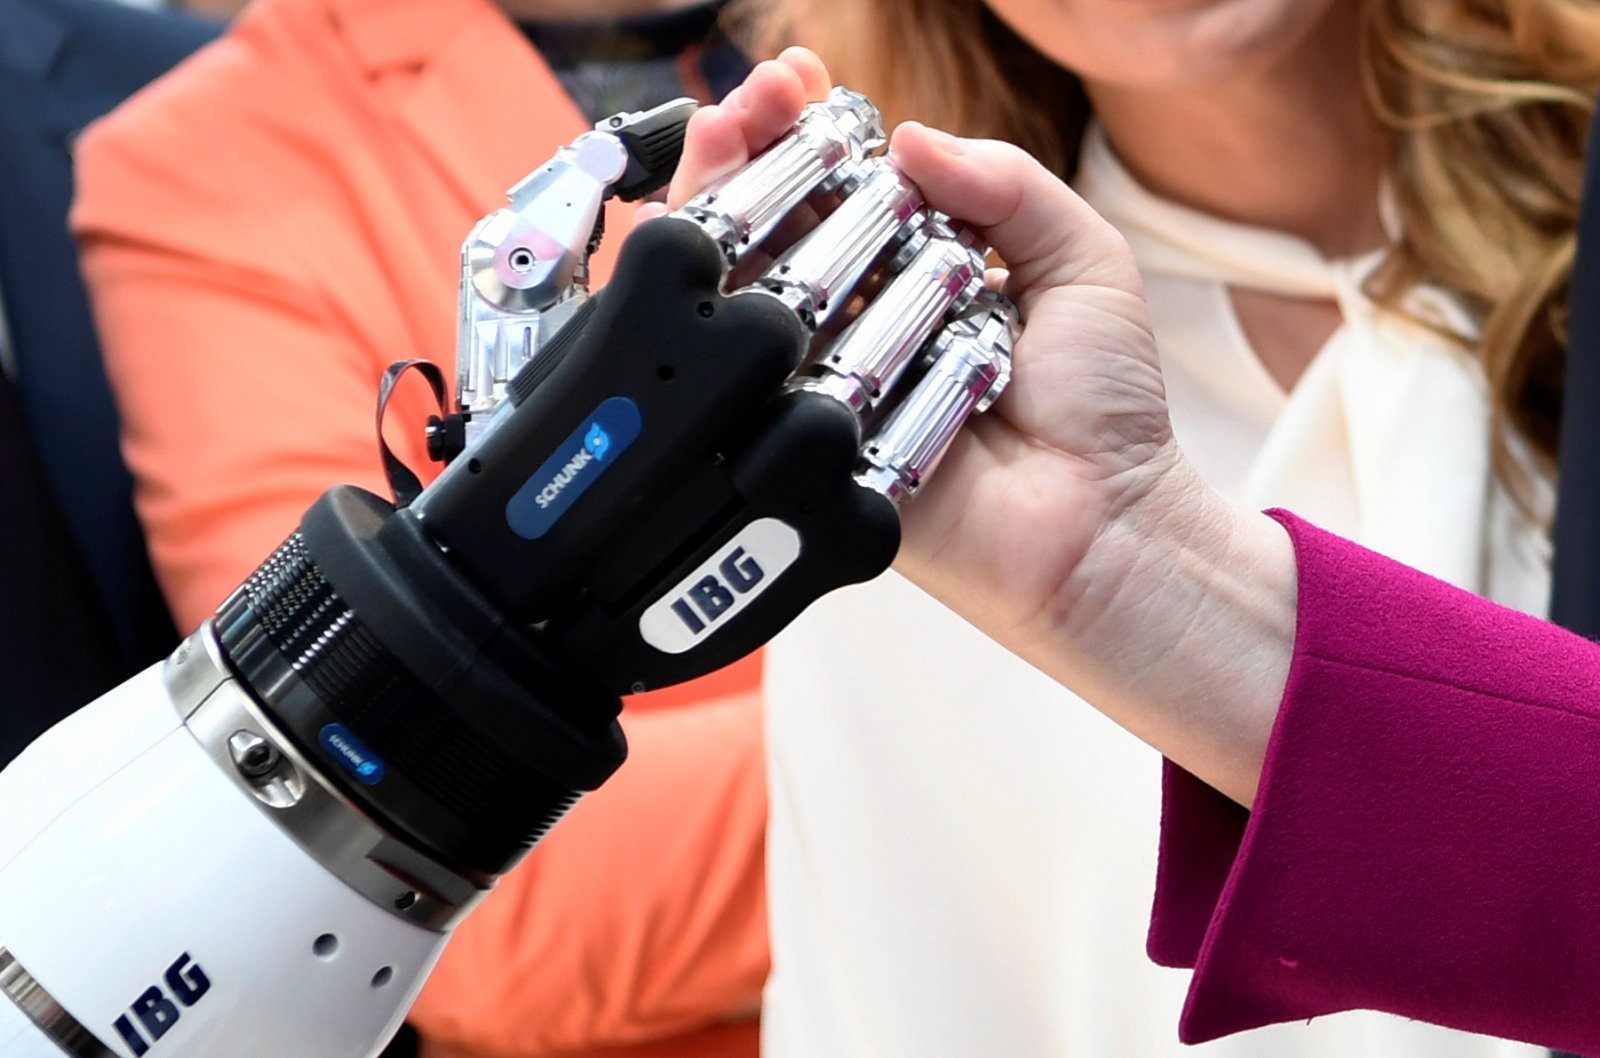 German Chancellor Angela Merkel shakes hands with a humanoid robot